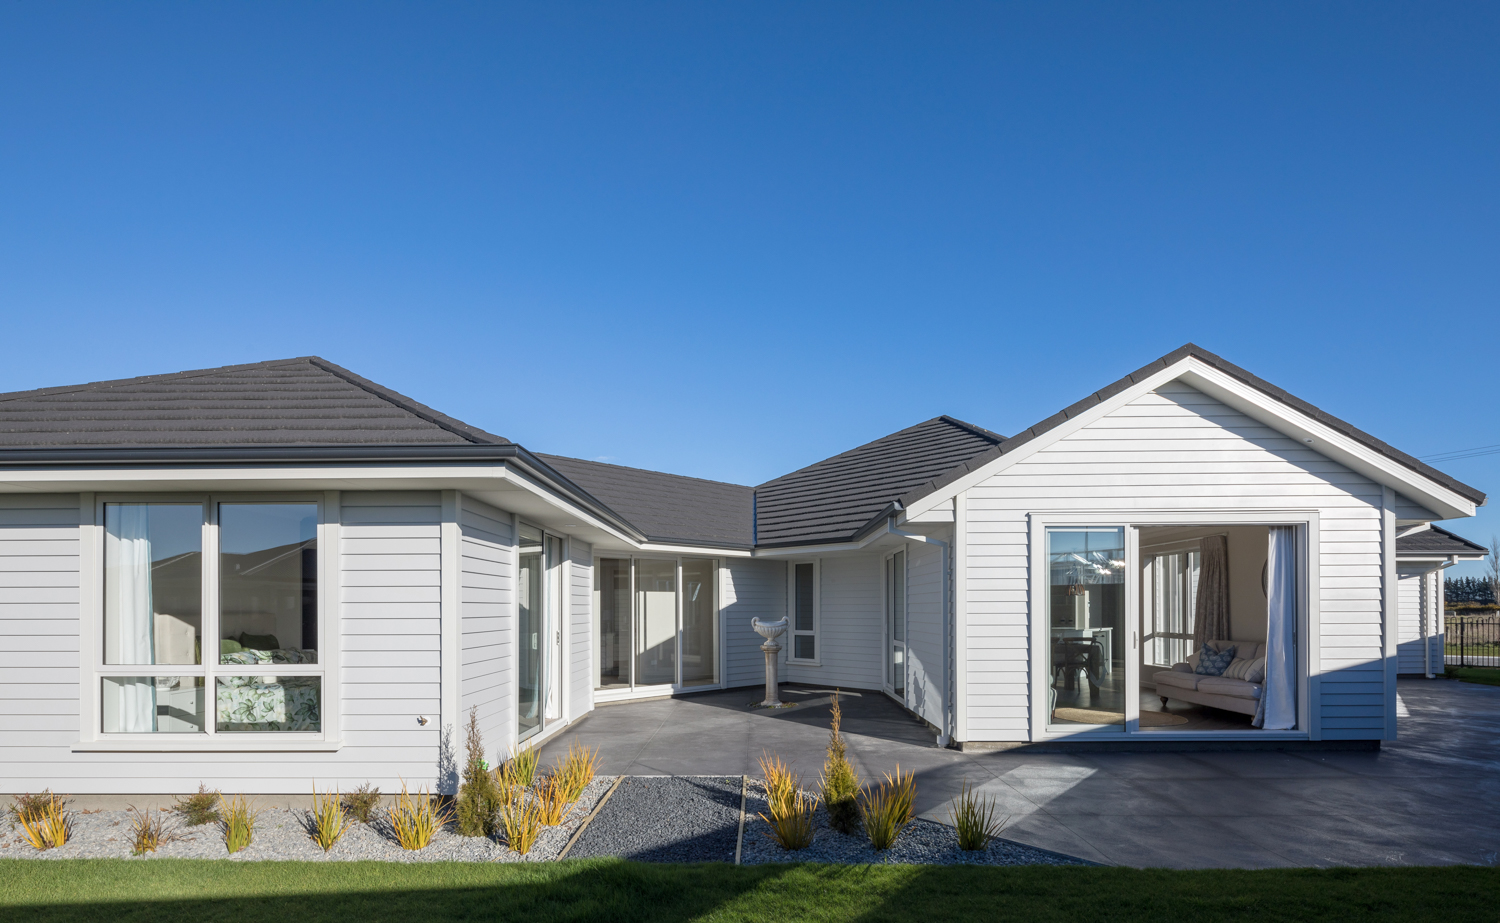 TH_Rolleston_Showhomes_030.jpg